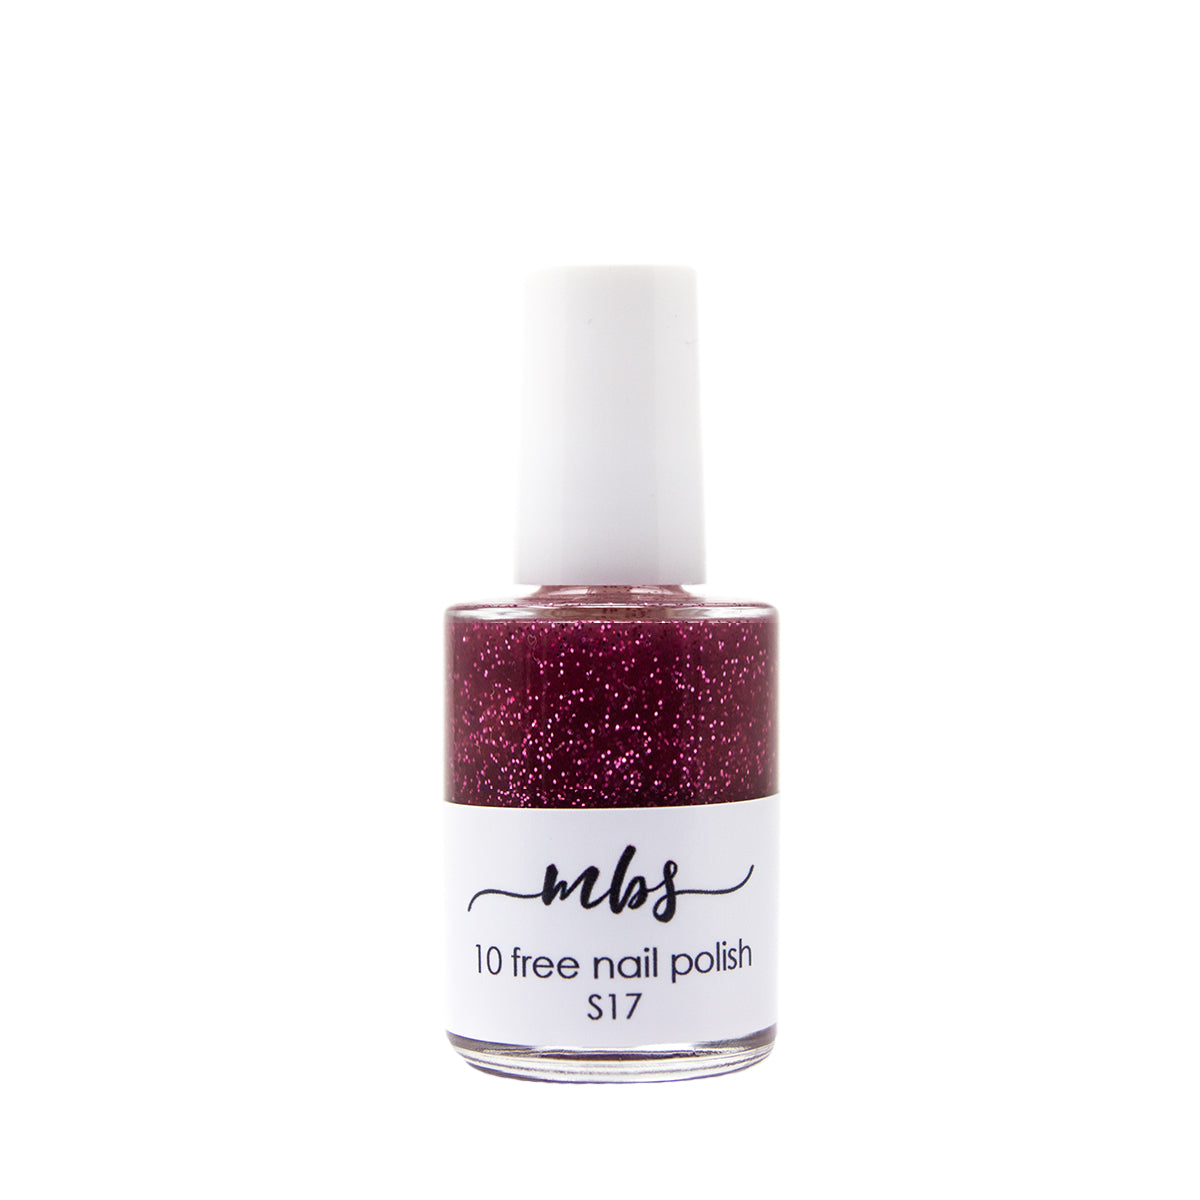 Nail Polish S17 - Morning Blossom Studio